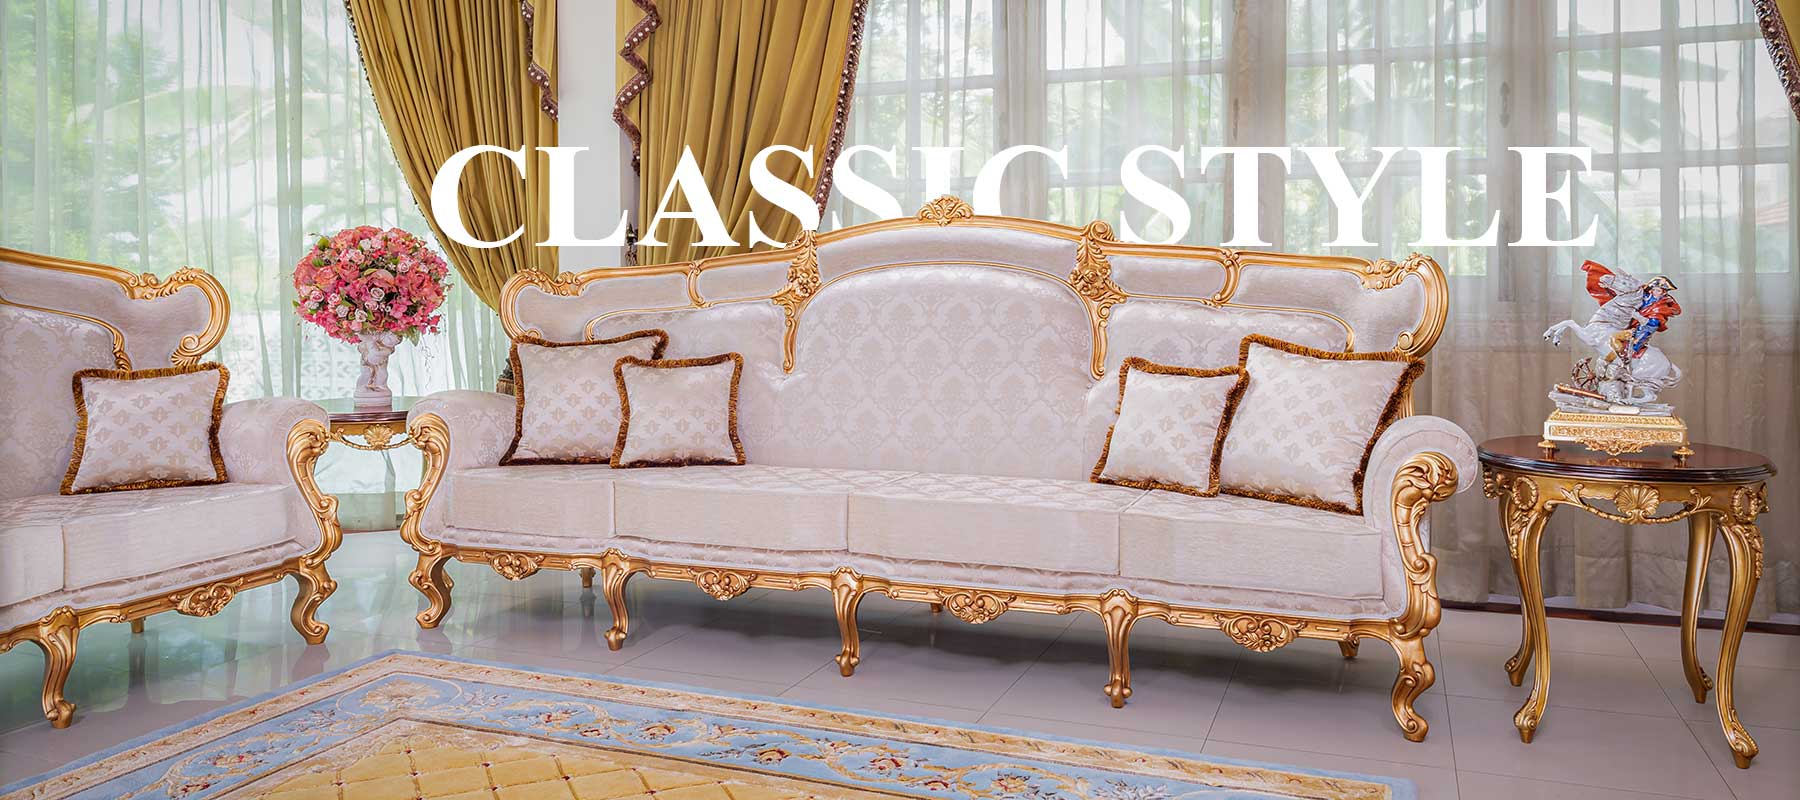 Italian Style Factory Seveso Mb classic italian furniture - luxury furniture italy by deluxe